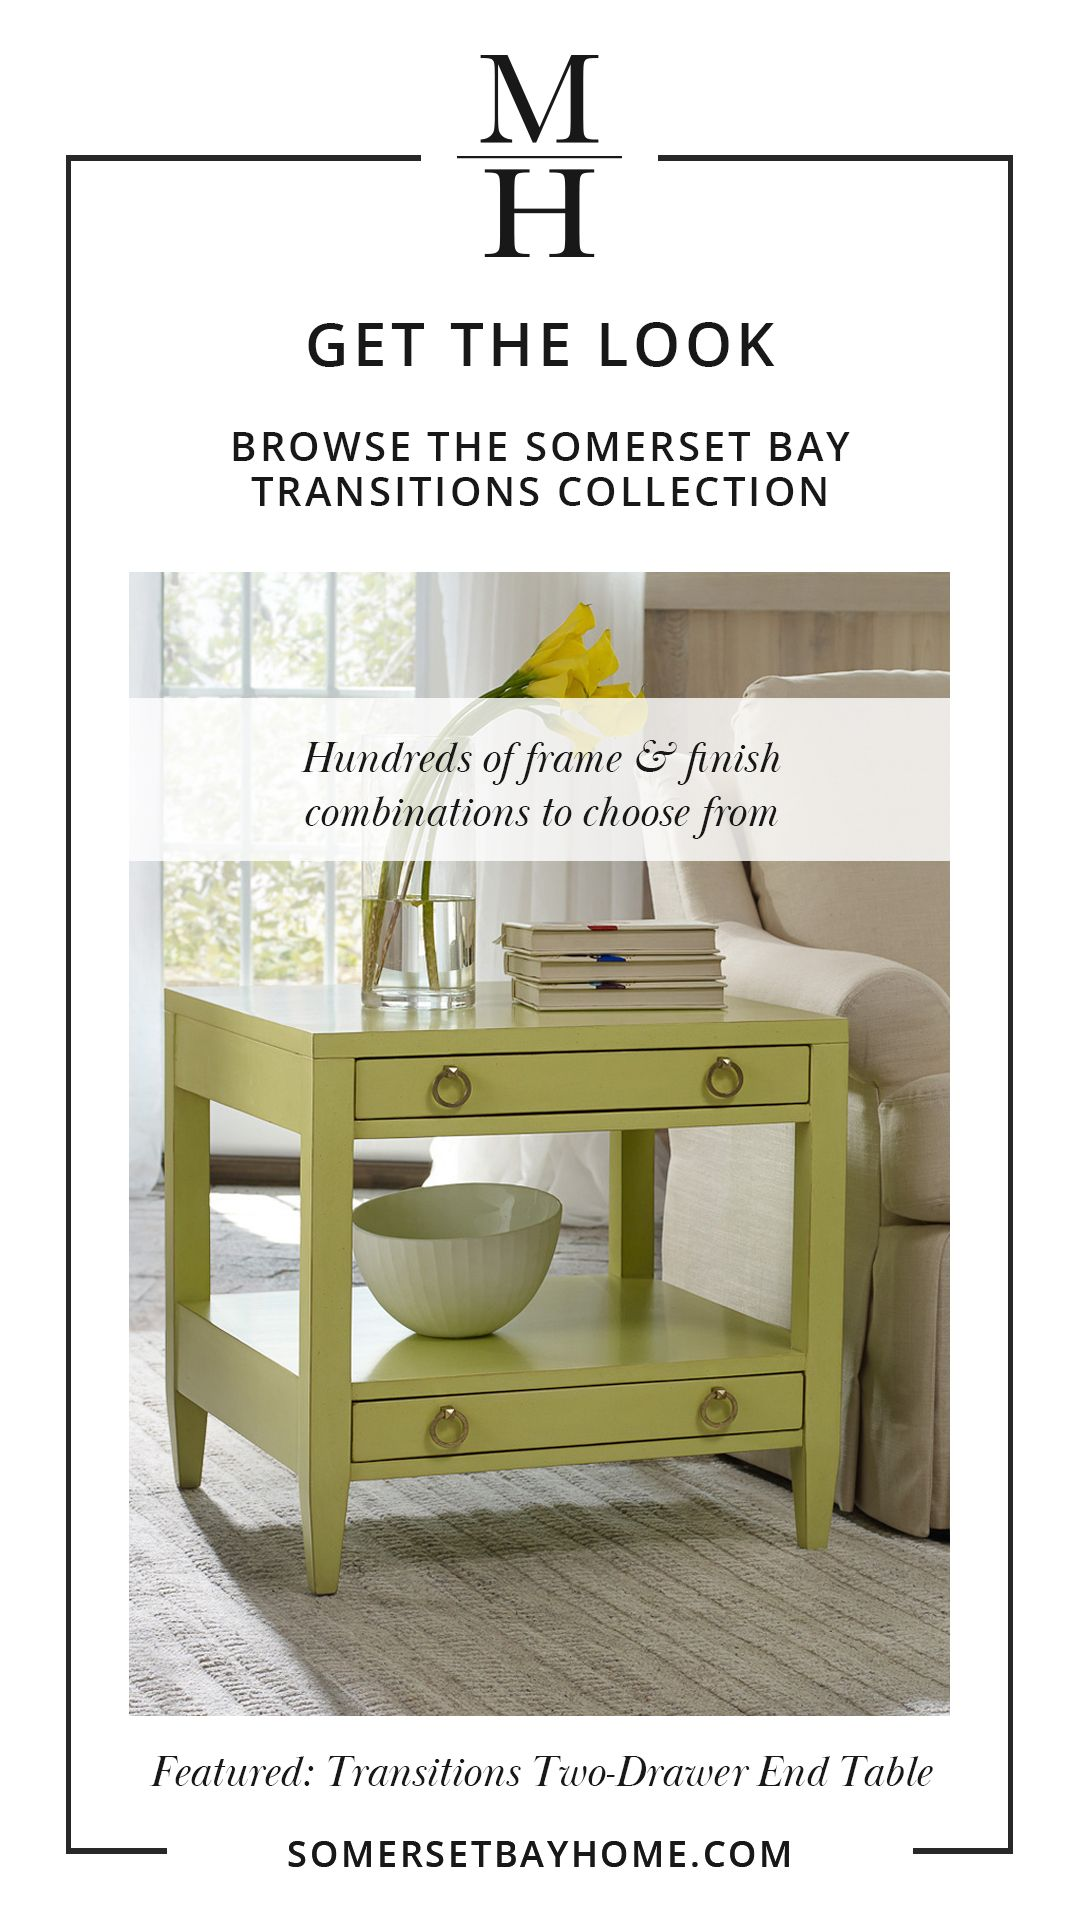 Get The Look Somerset Bay Furniture Transitions Collection Furniture Somerset Bay Home Decor